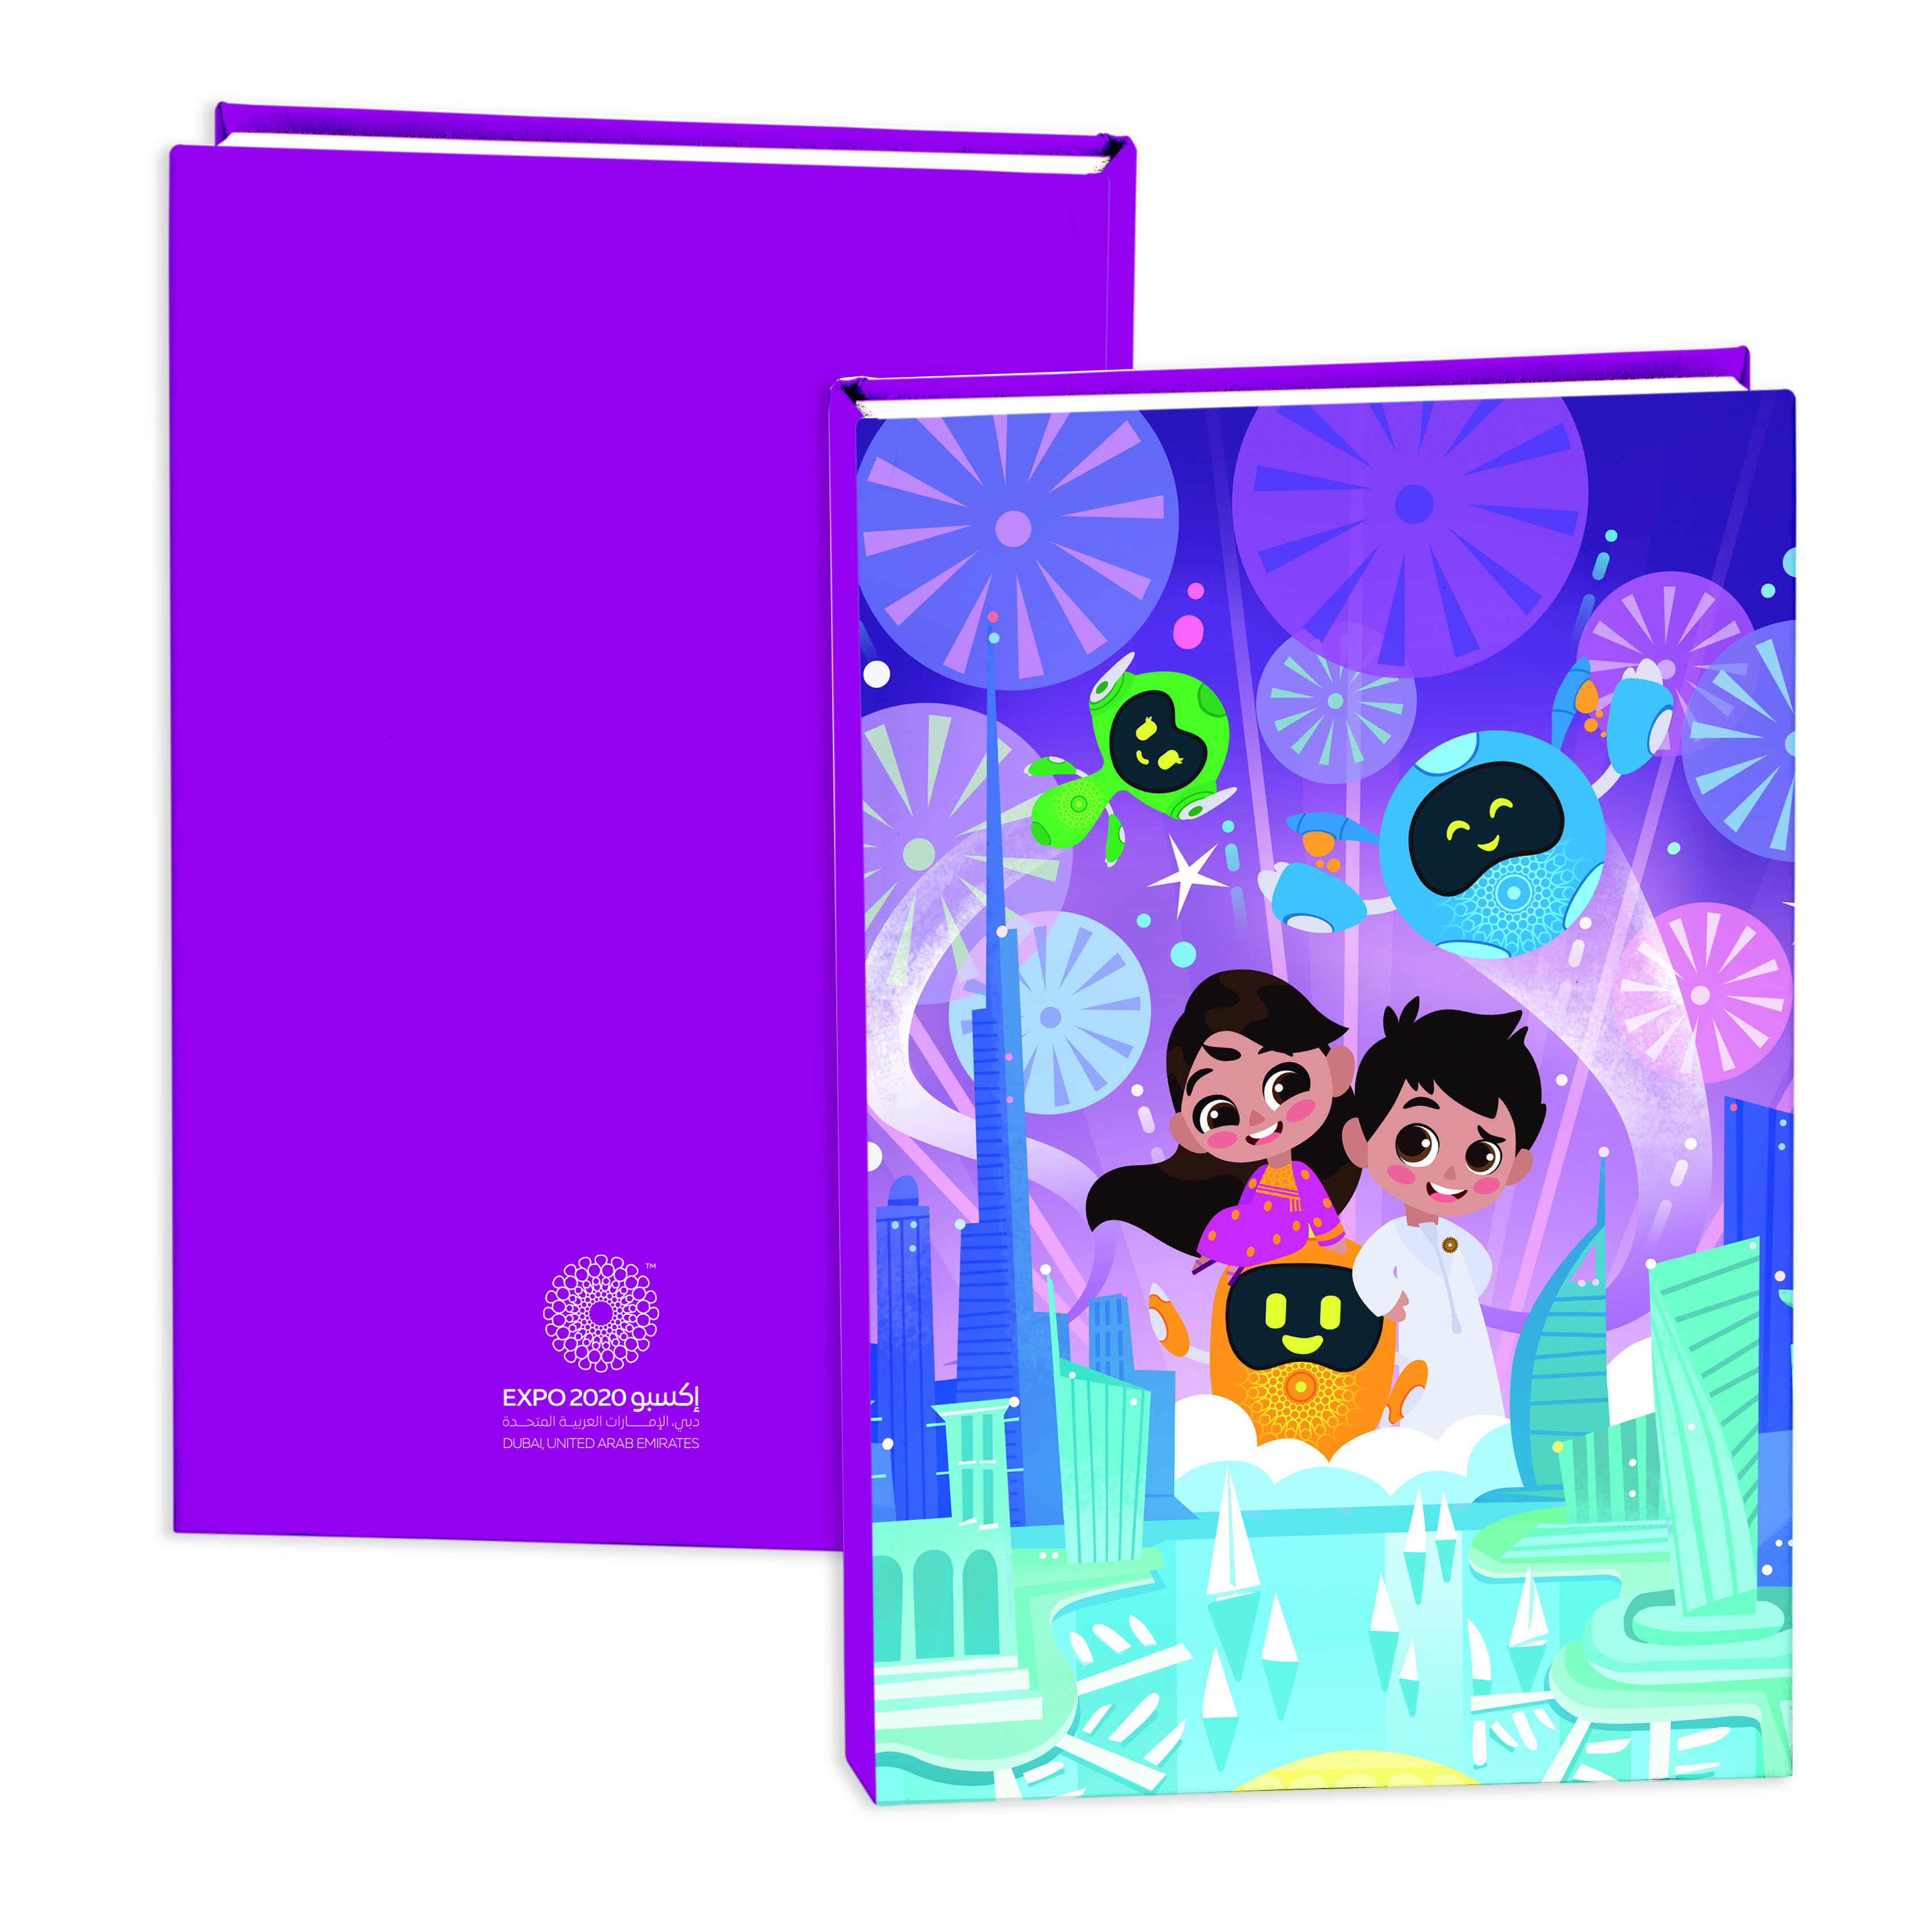 Expo 2020 Dubai Mascots Family B5 Hardcase Exercise Books Pack of 2 - 192 Pages